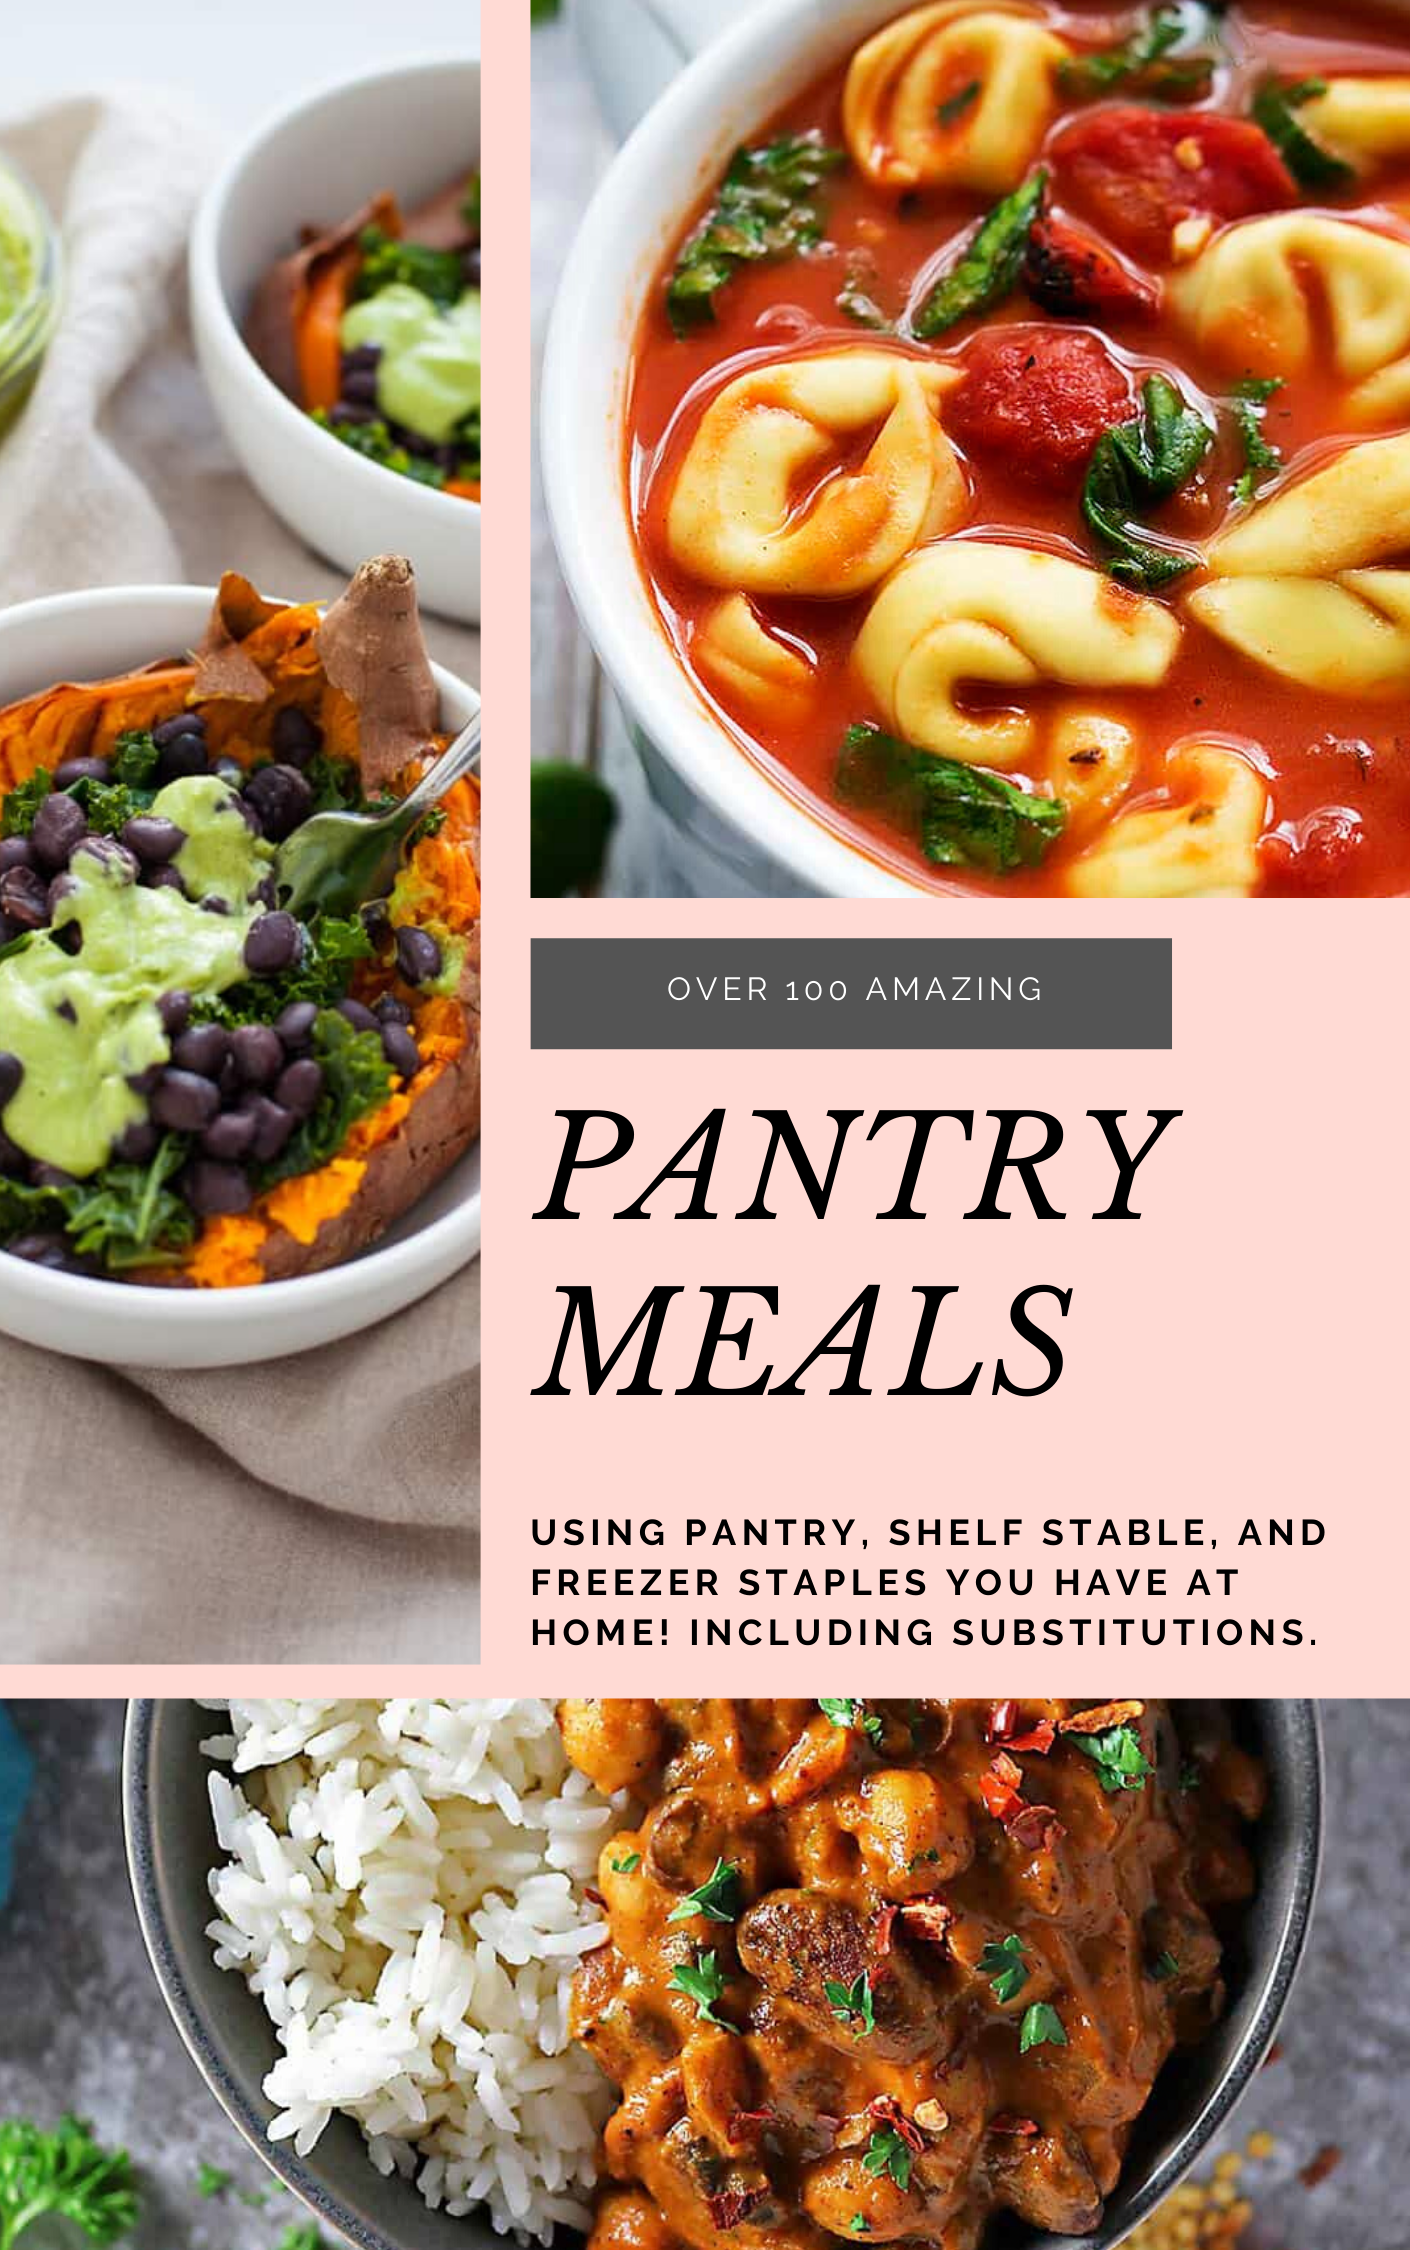 These family-friendly meals use pantry ingredients like beans, lentils, canned goods, pasta, rice, and broth, plus or minus staples that keep well in the freezer or refrigerator. These flexible recipes are all about using what you have on hand to make easy, delicious lunches and dinners! | glitterinc.com | @glitterinc